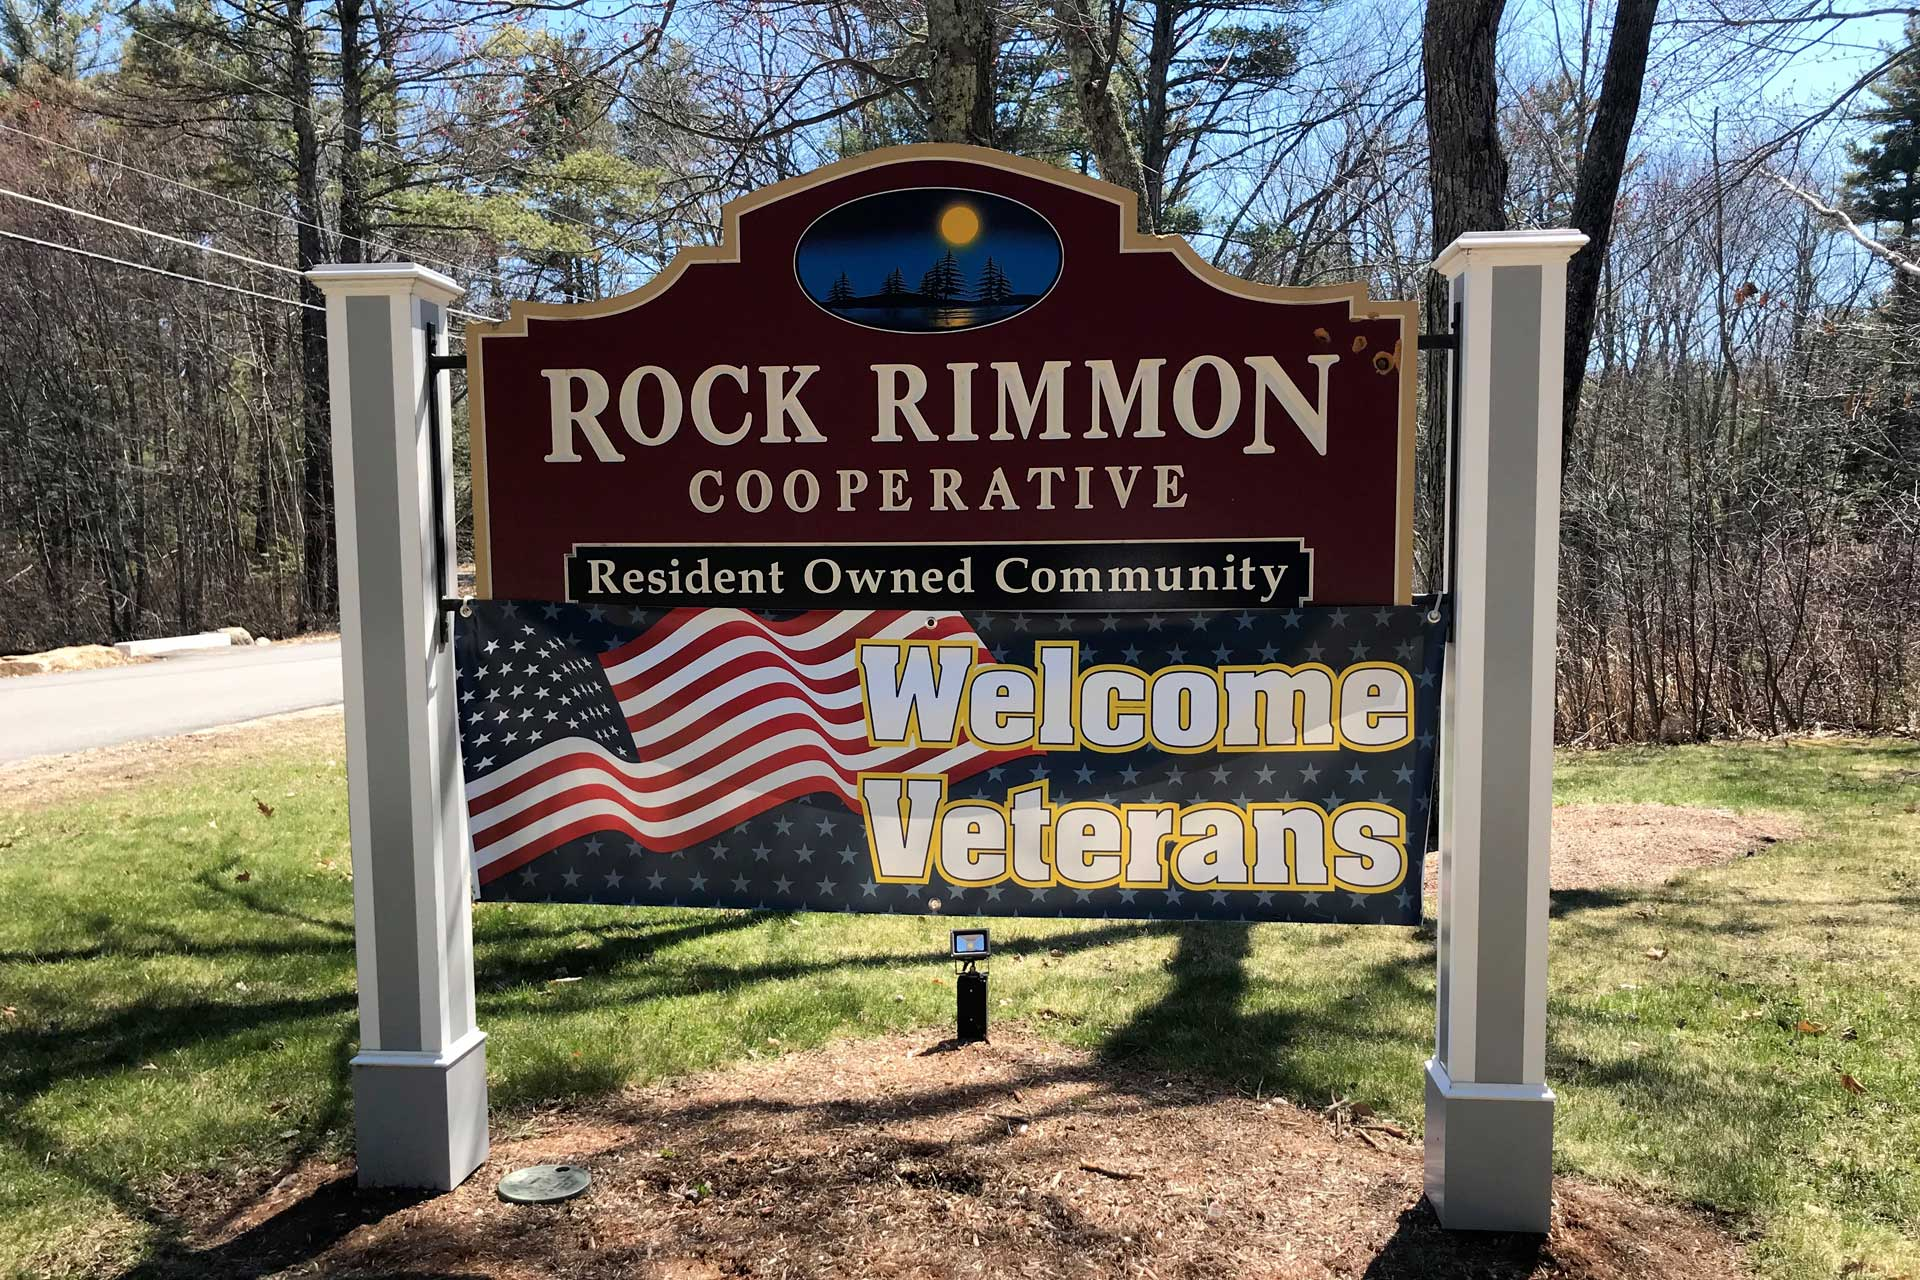 A Welcome Veterans banner hangs at the entrance to Rock Rimmon Cooperative